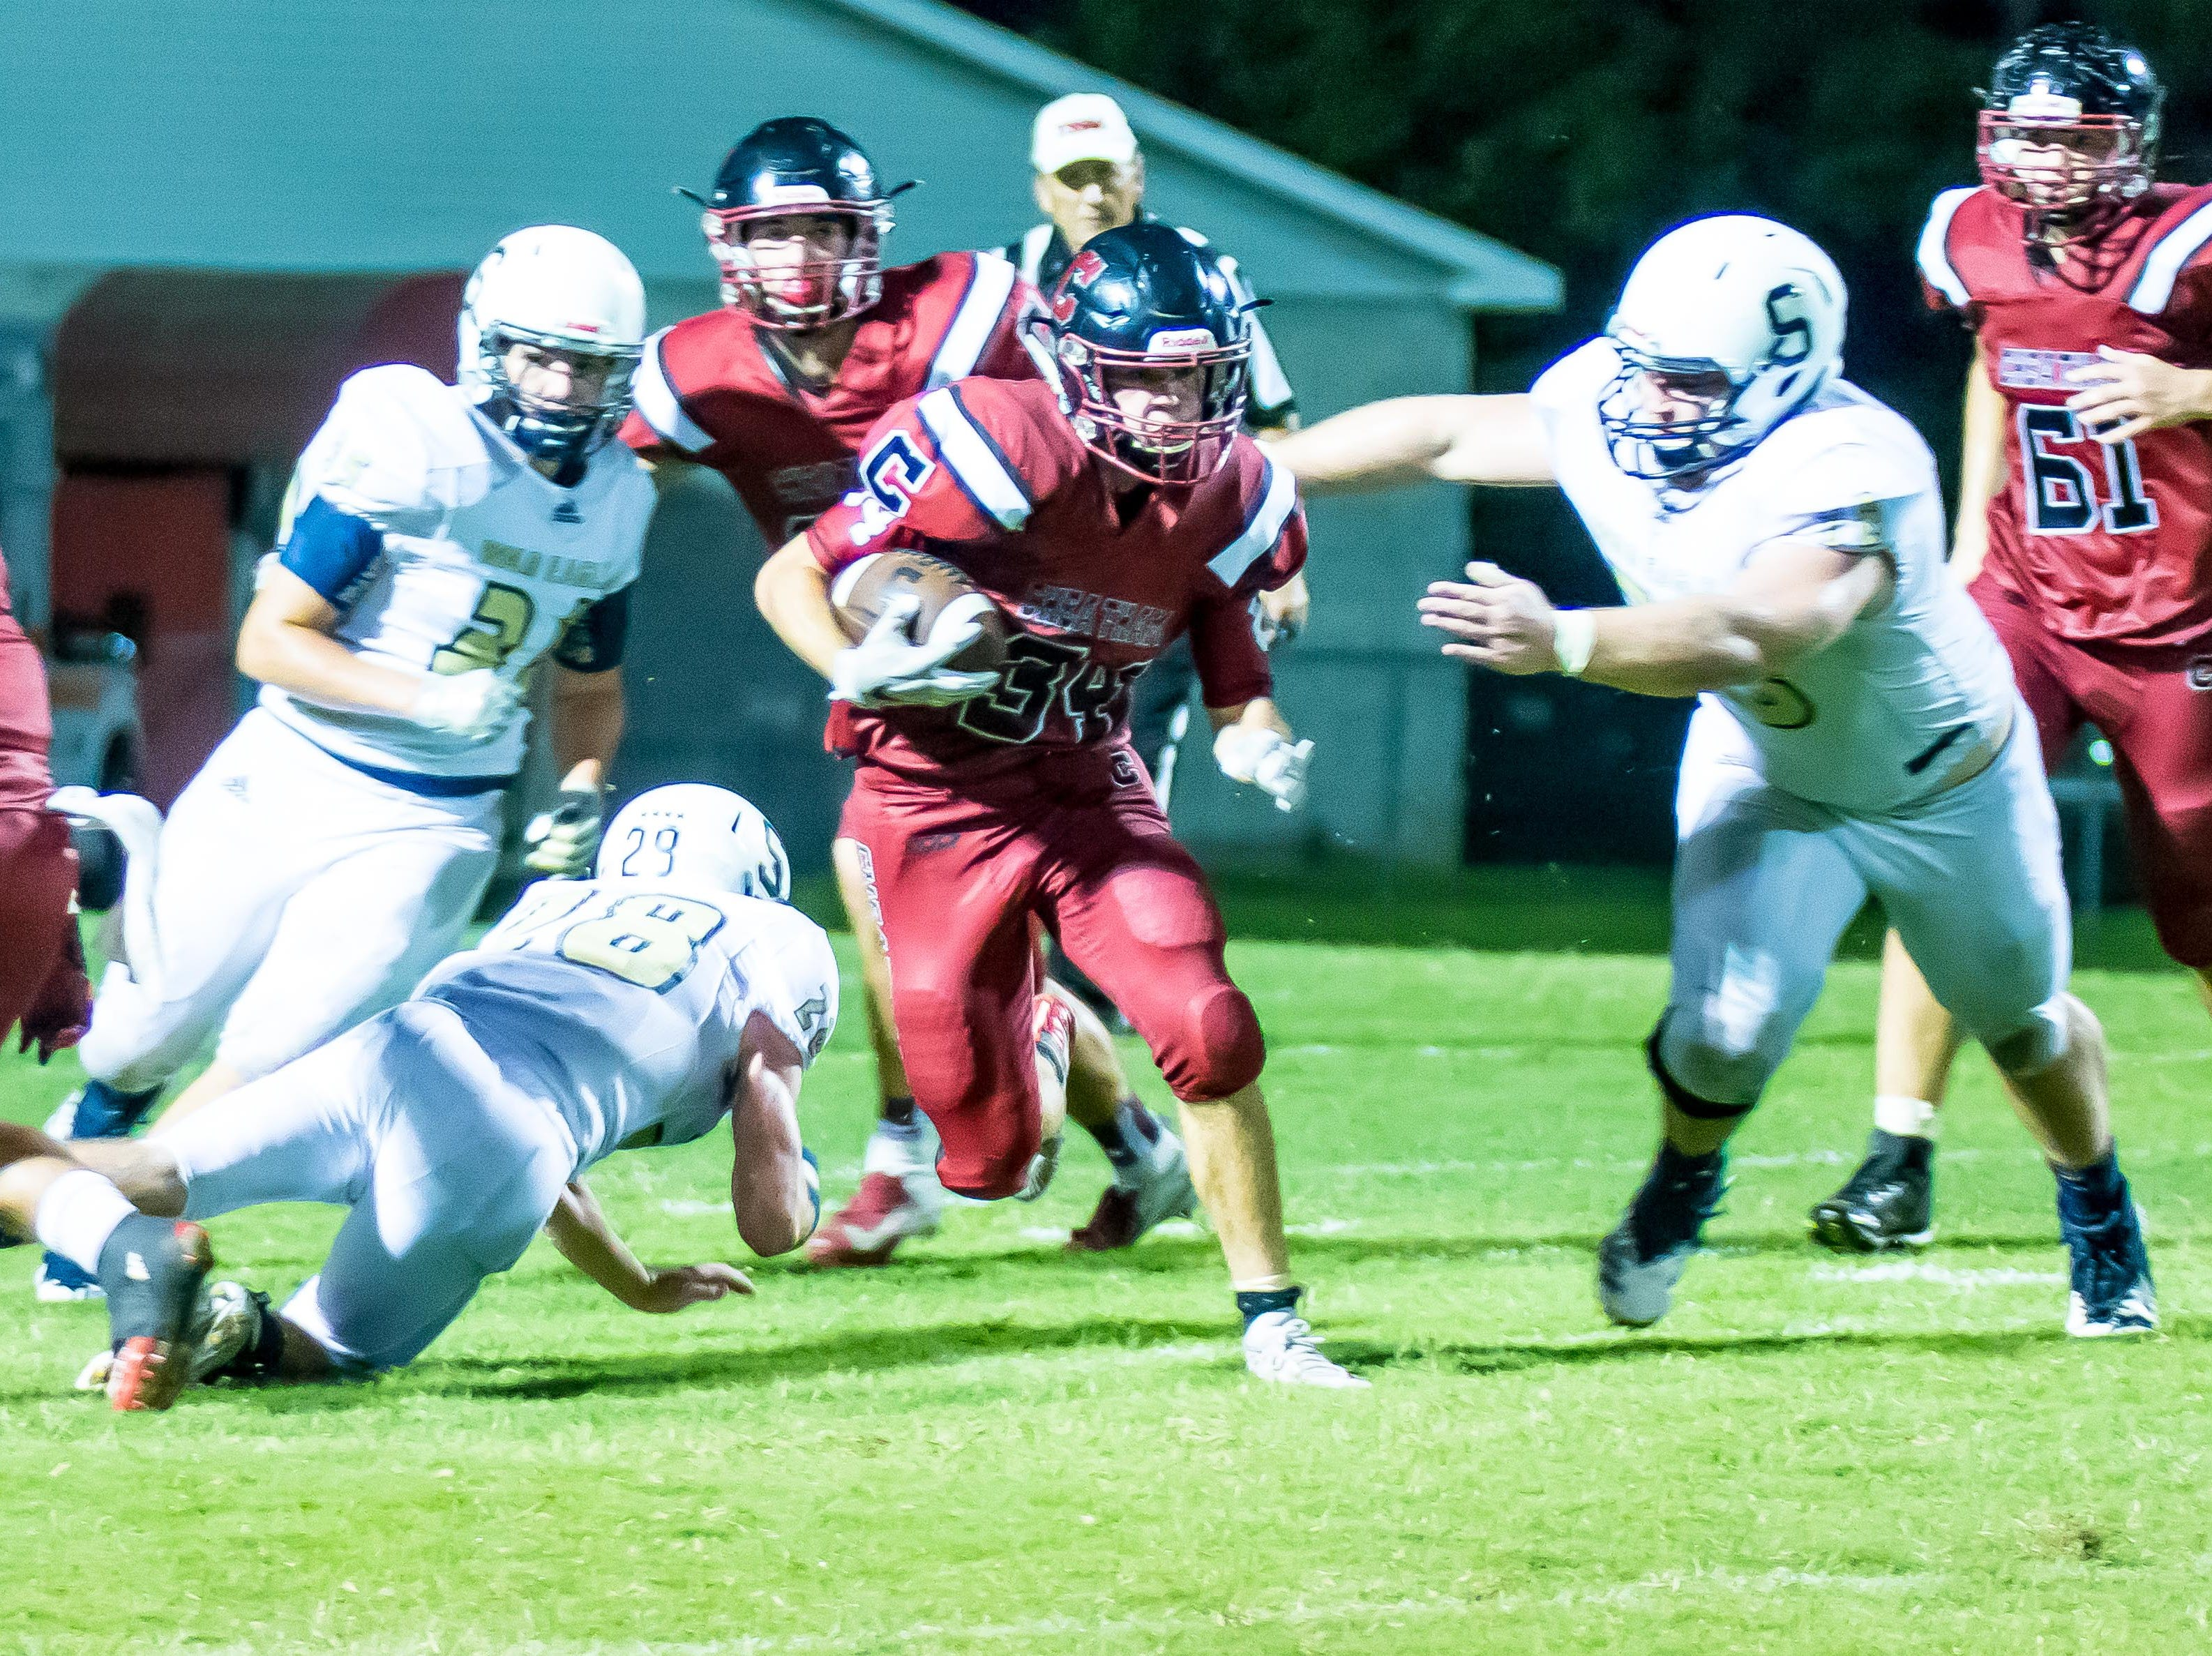 Cheatham County's Walker Bunce runs the ball against rival Sycamore.